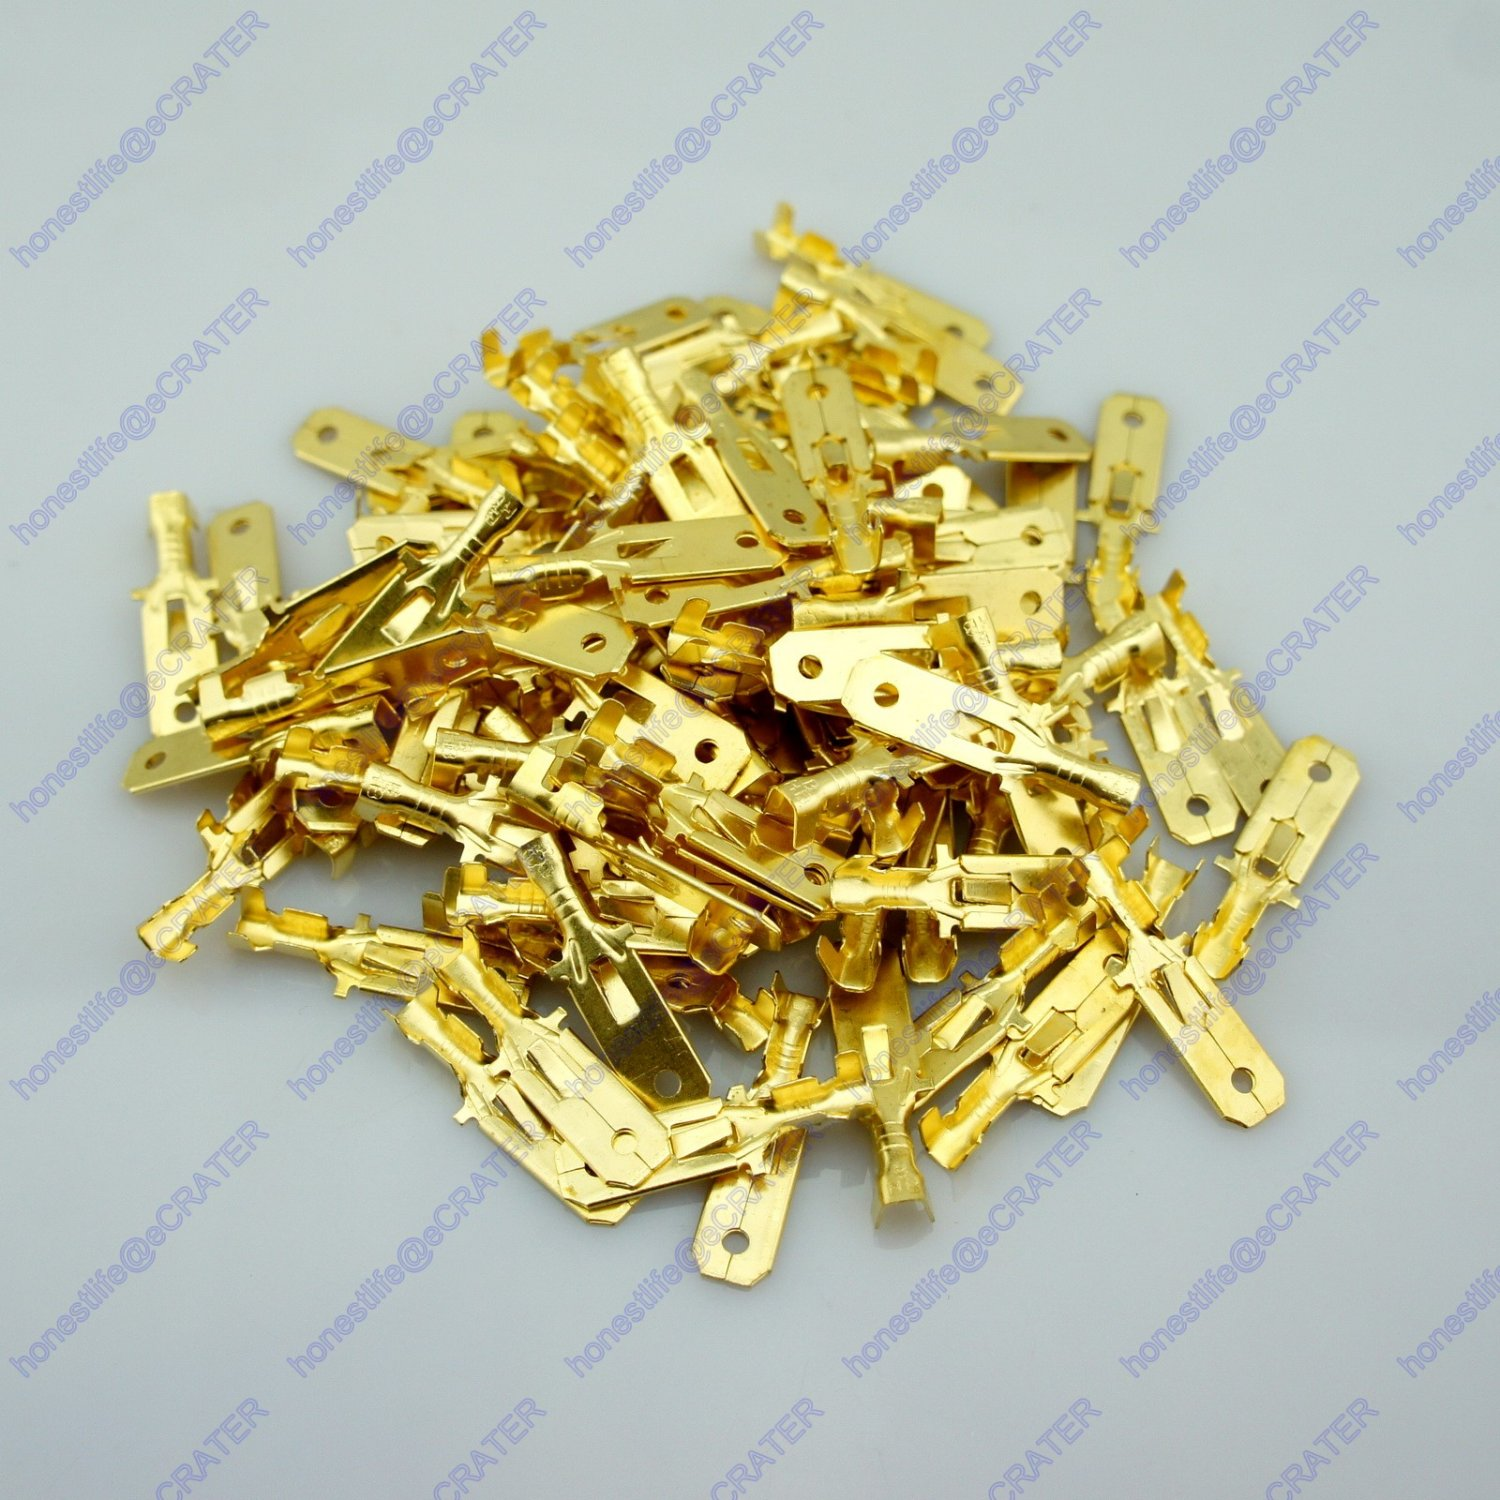 100 6.3mm Male Brass Terminal With Tap For Block Connector 20-12 AWG Wire Car